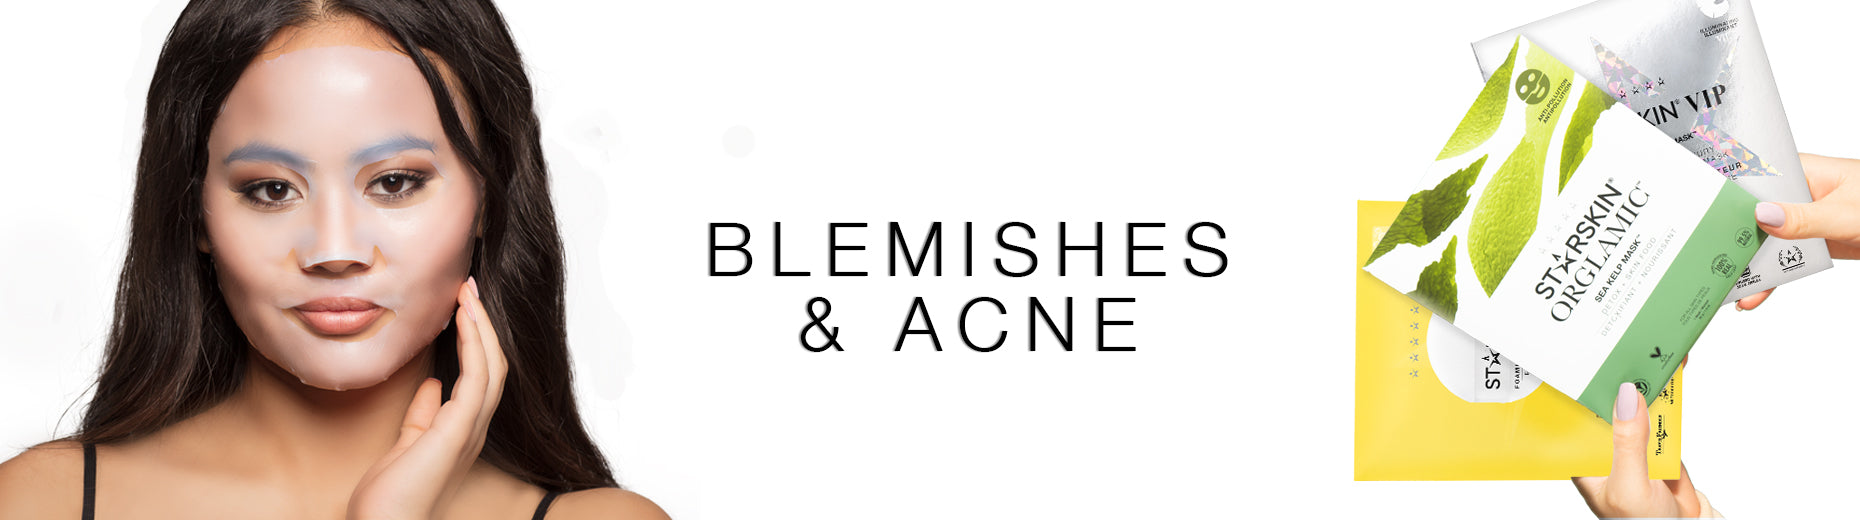 banner acne model and bio cellose sheet mask